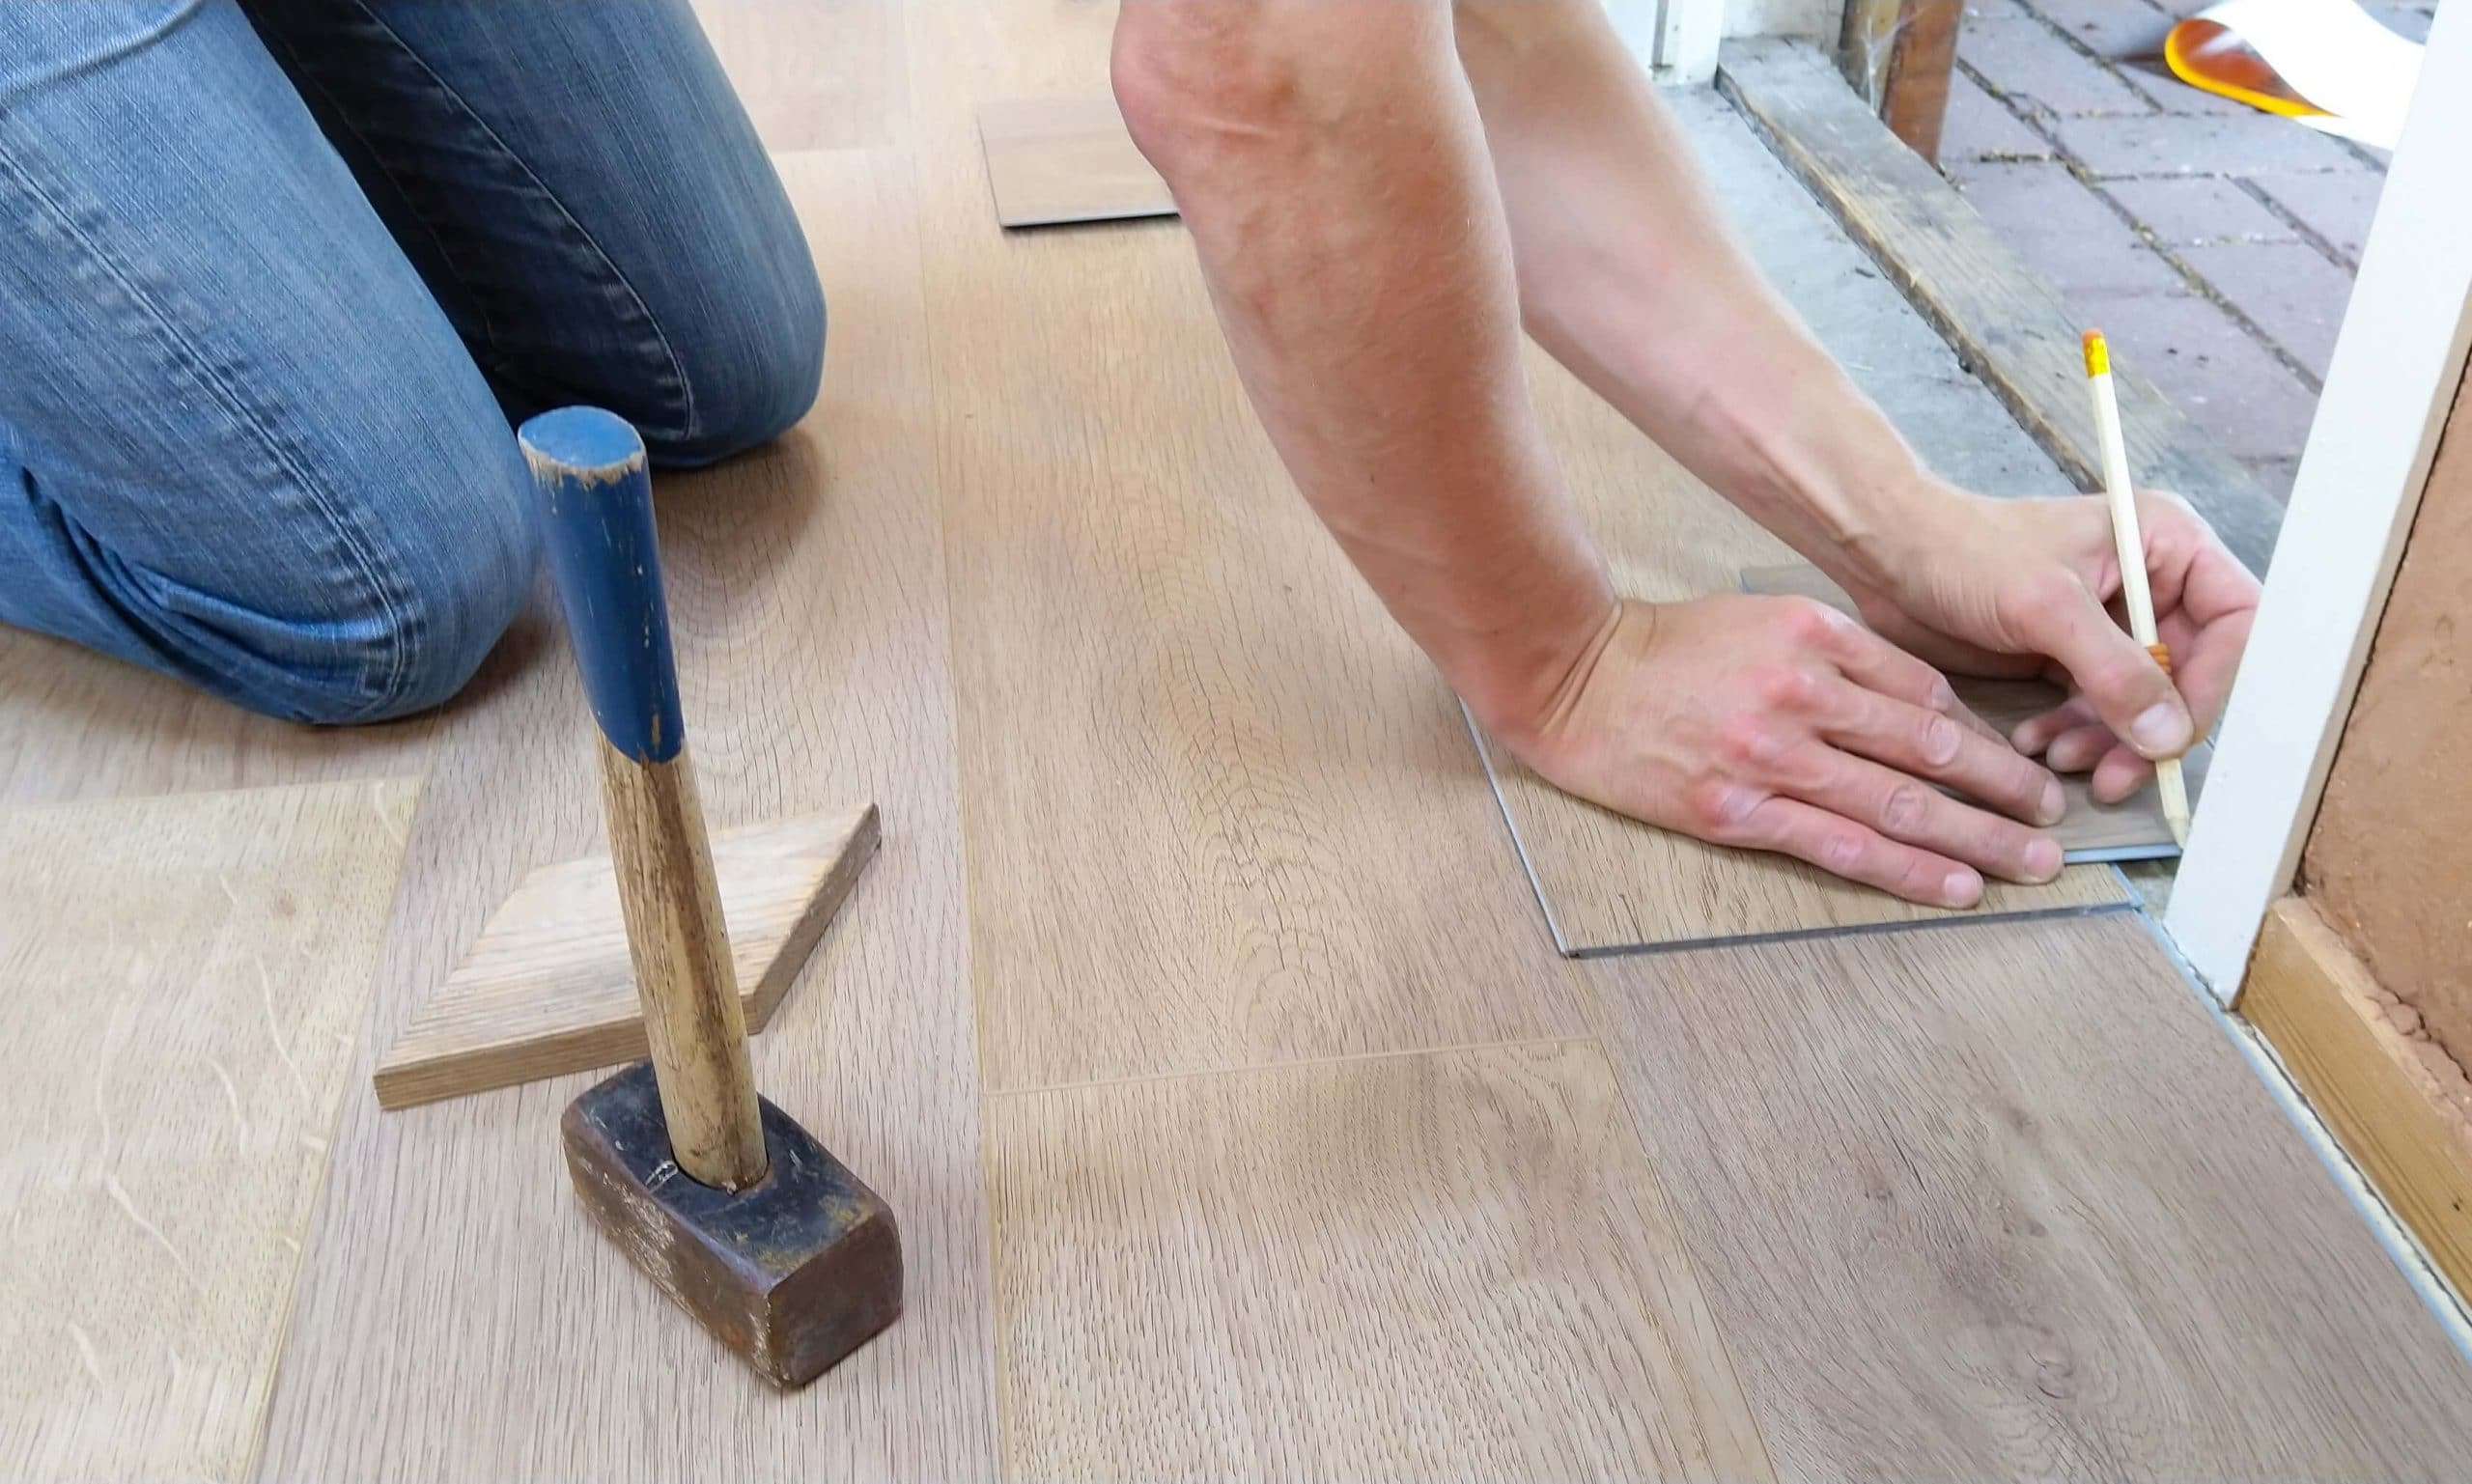 A handyman marking the wooden tiles with a pencil